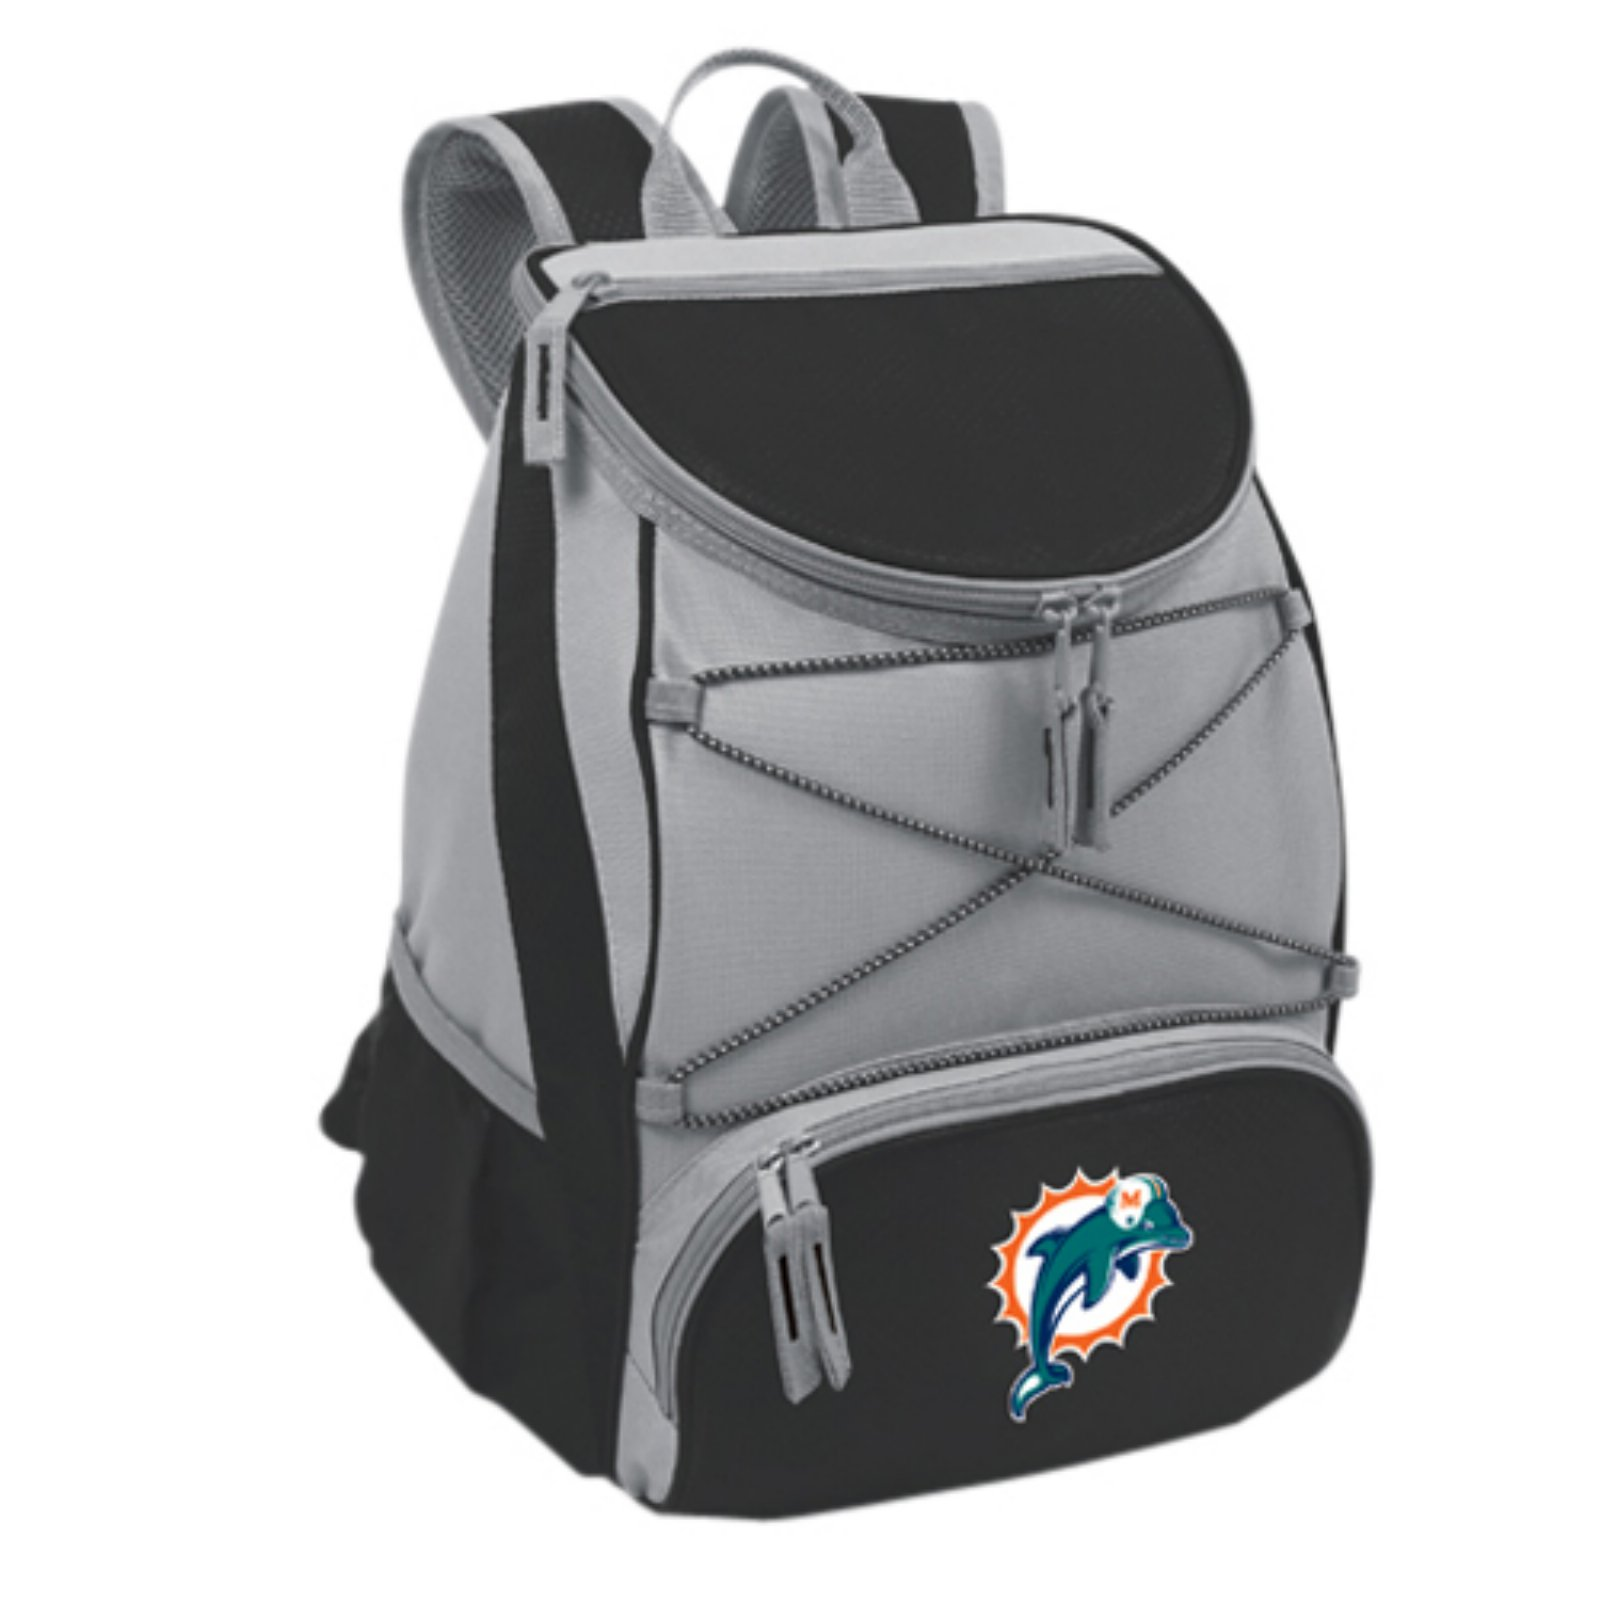 Picnic Time PTX Cooler, Black Miami Dolphins Digital Print